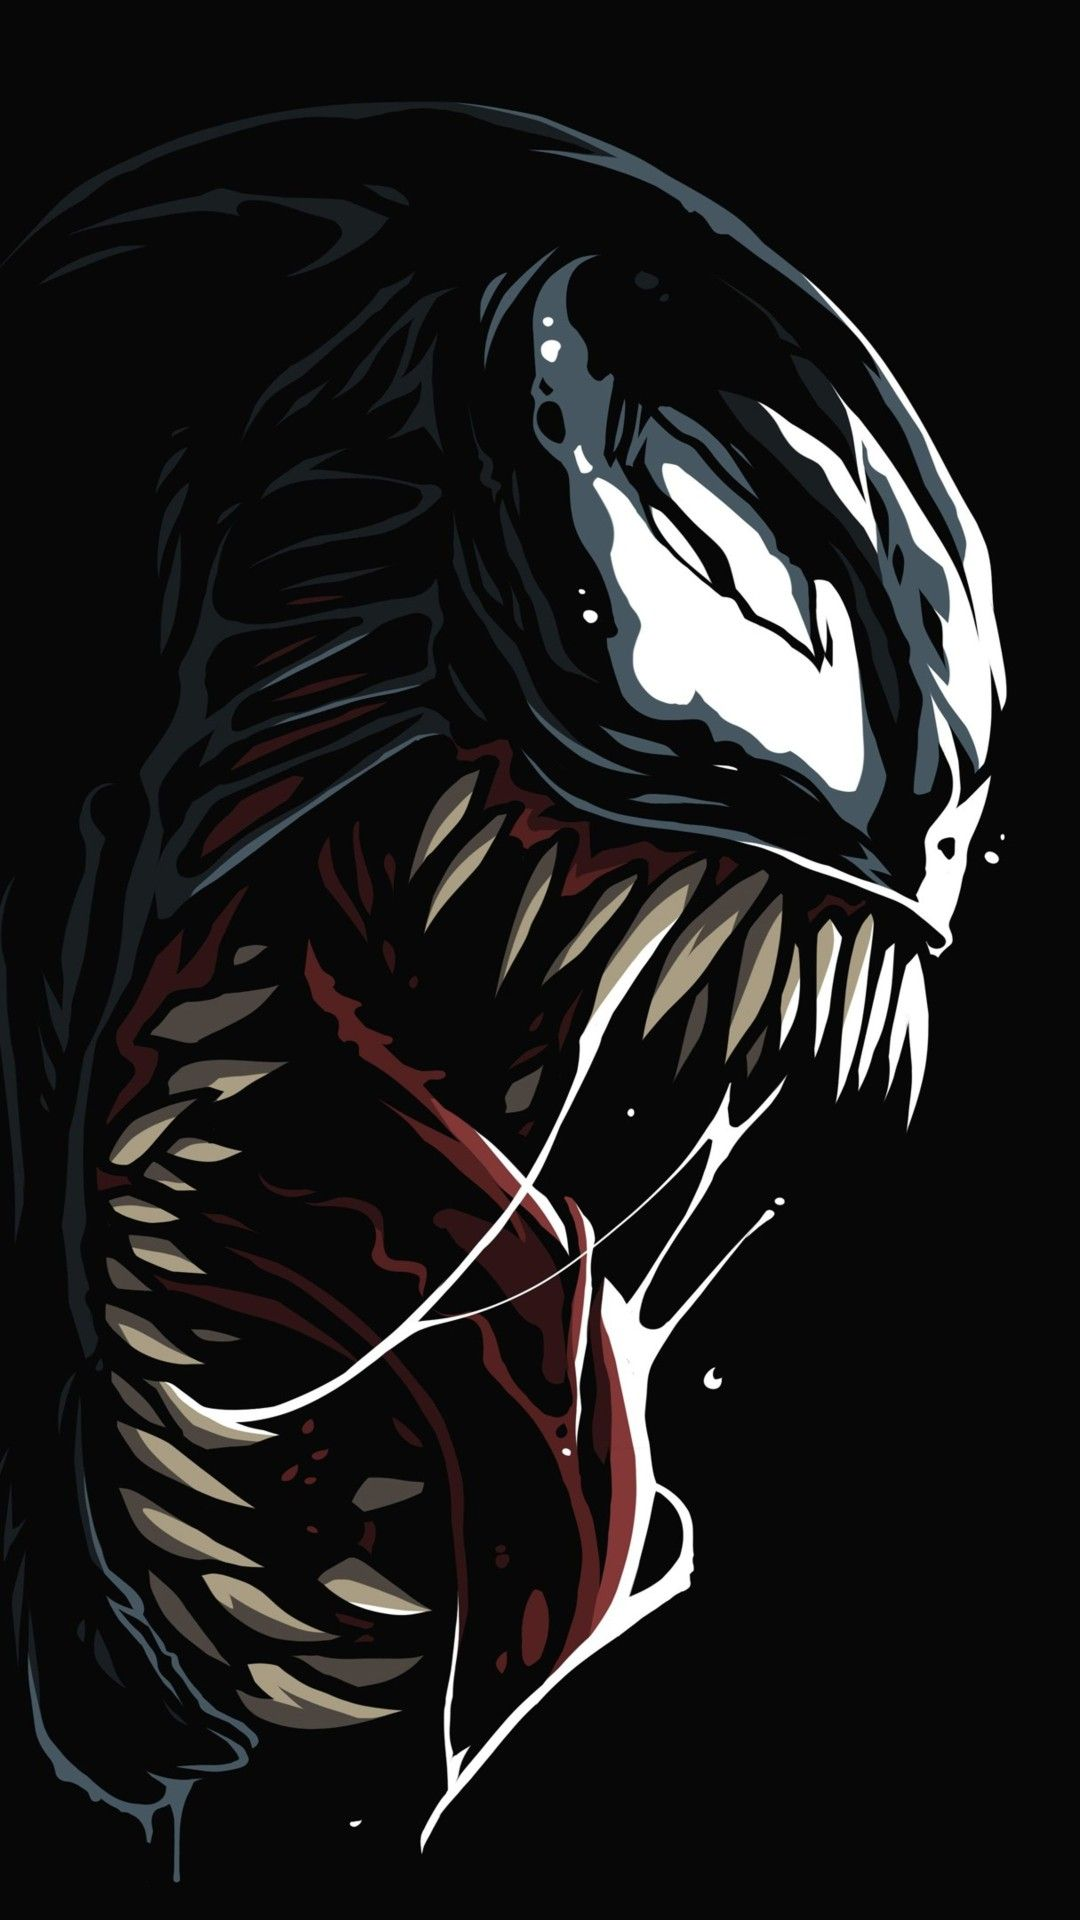 Pin By Ray On Spider Man Venom Carnage Deadpool Wallpaper Marvel Comics Wallpaper Hd Anime Wallpapers